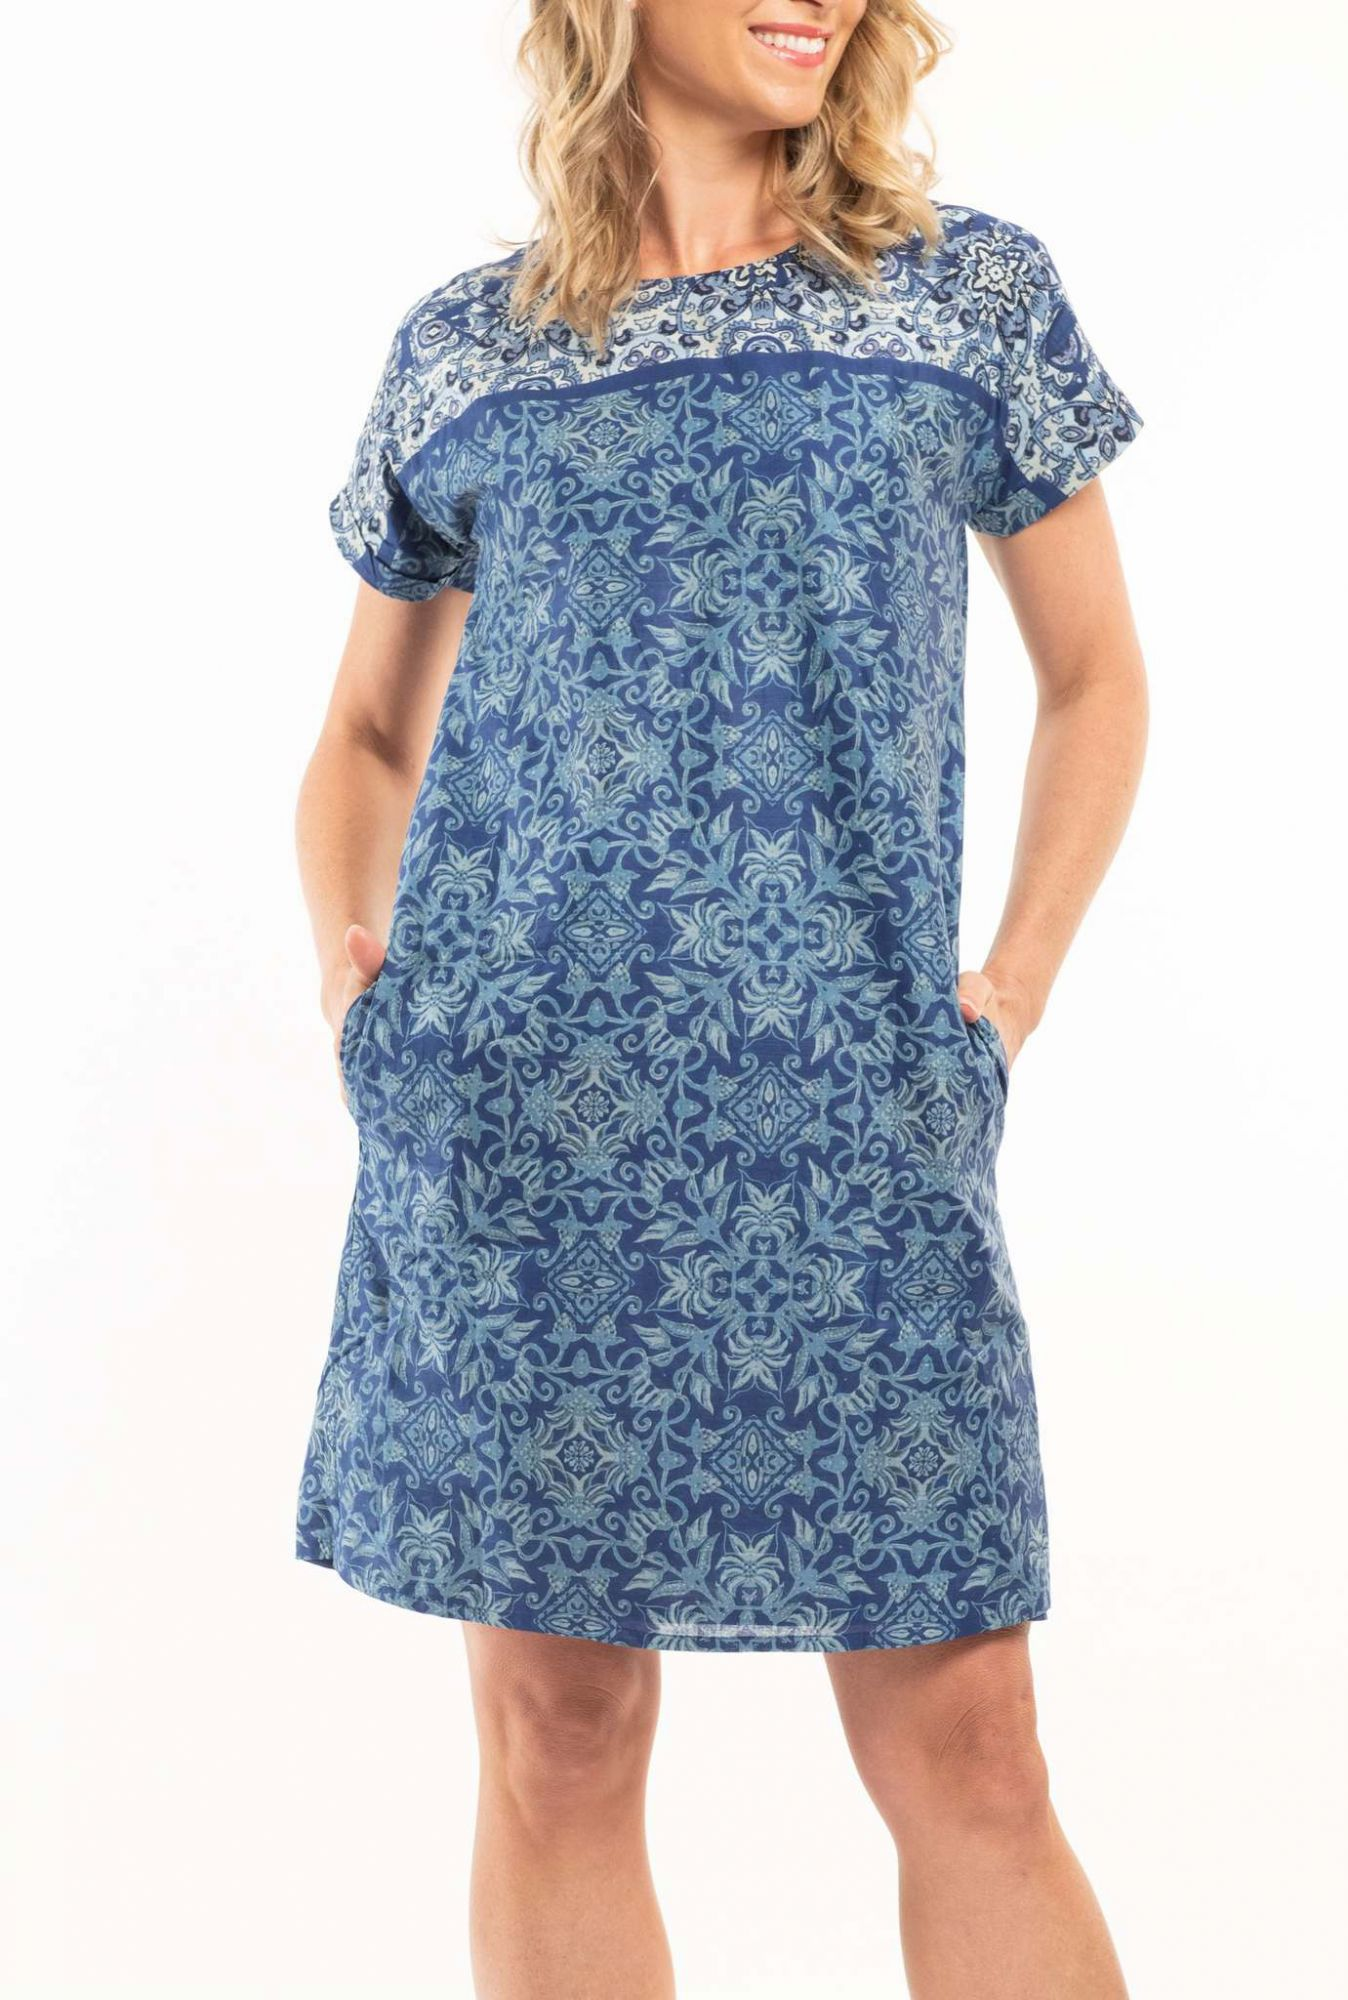 Orientique blue dress Andros